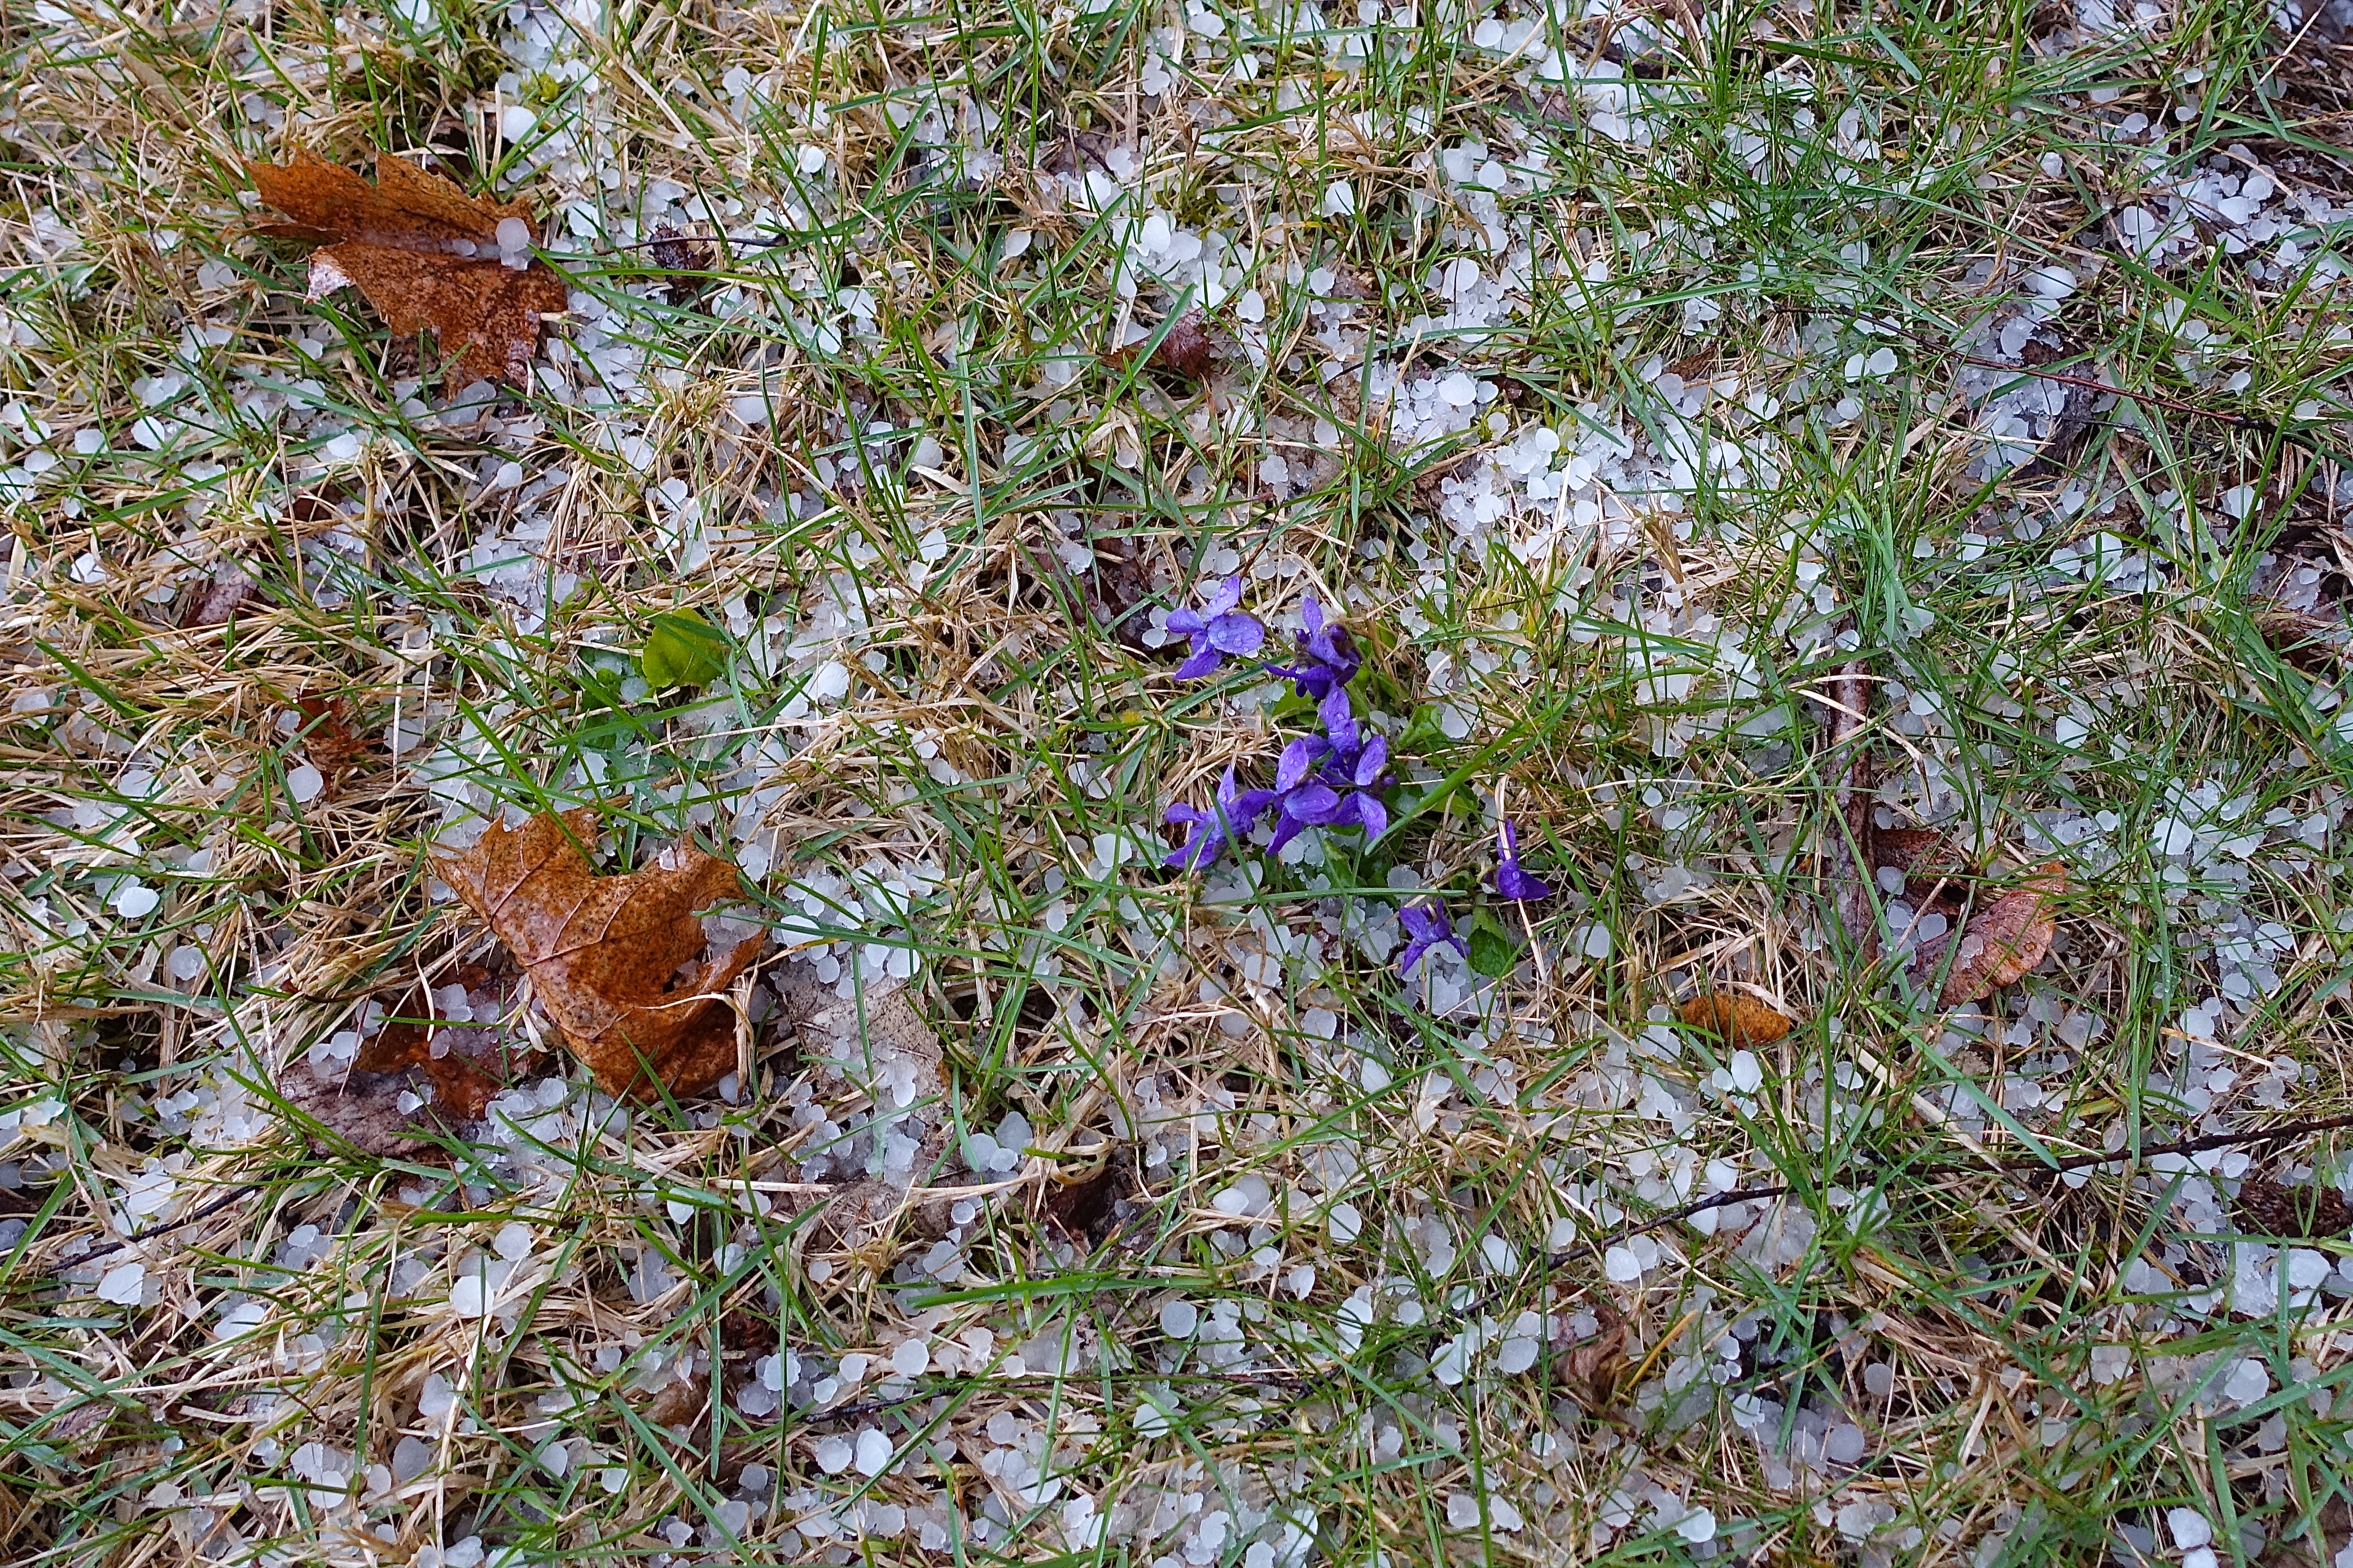 Hail and Violets on Easter!